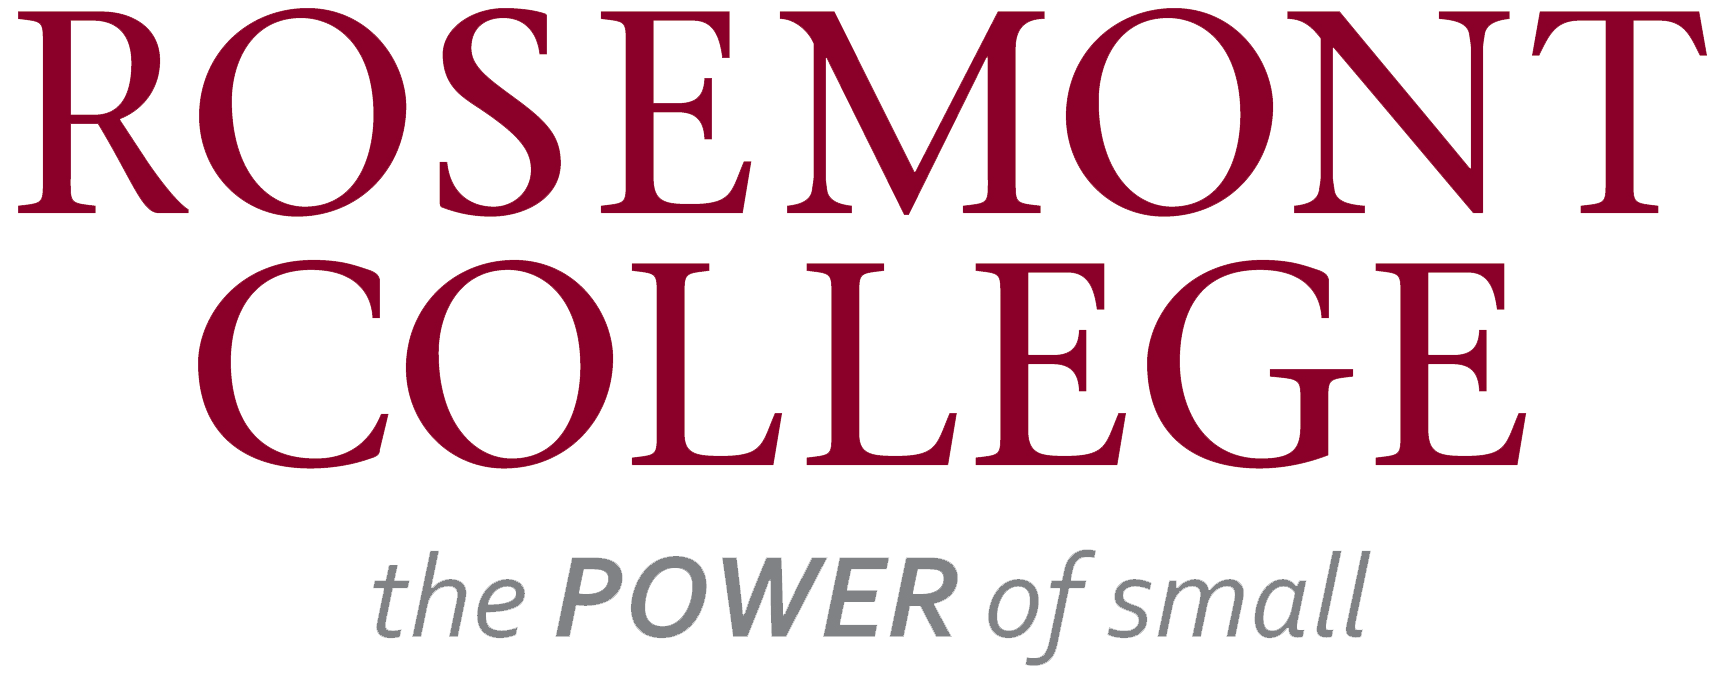 Rosemont College Logo - The Power of Small